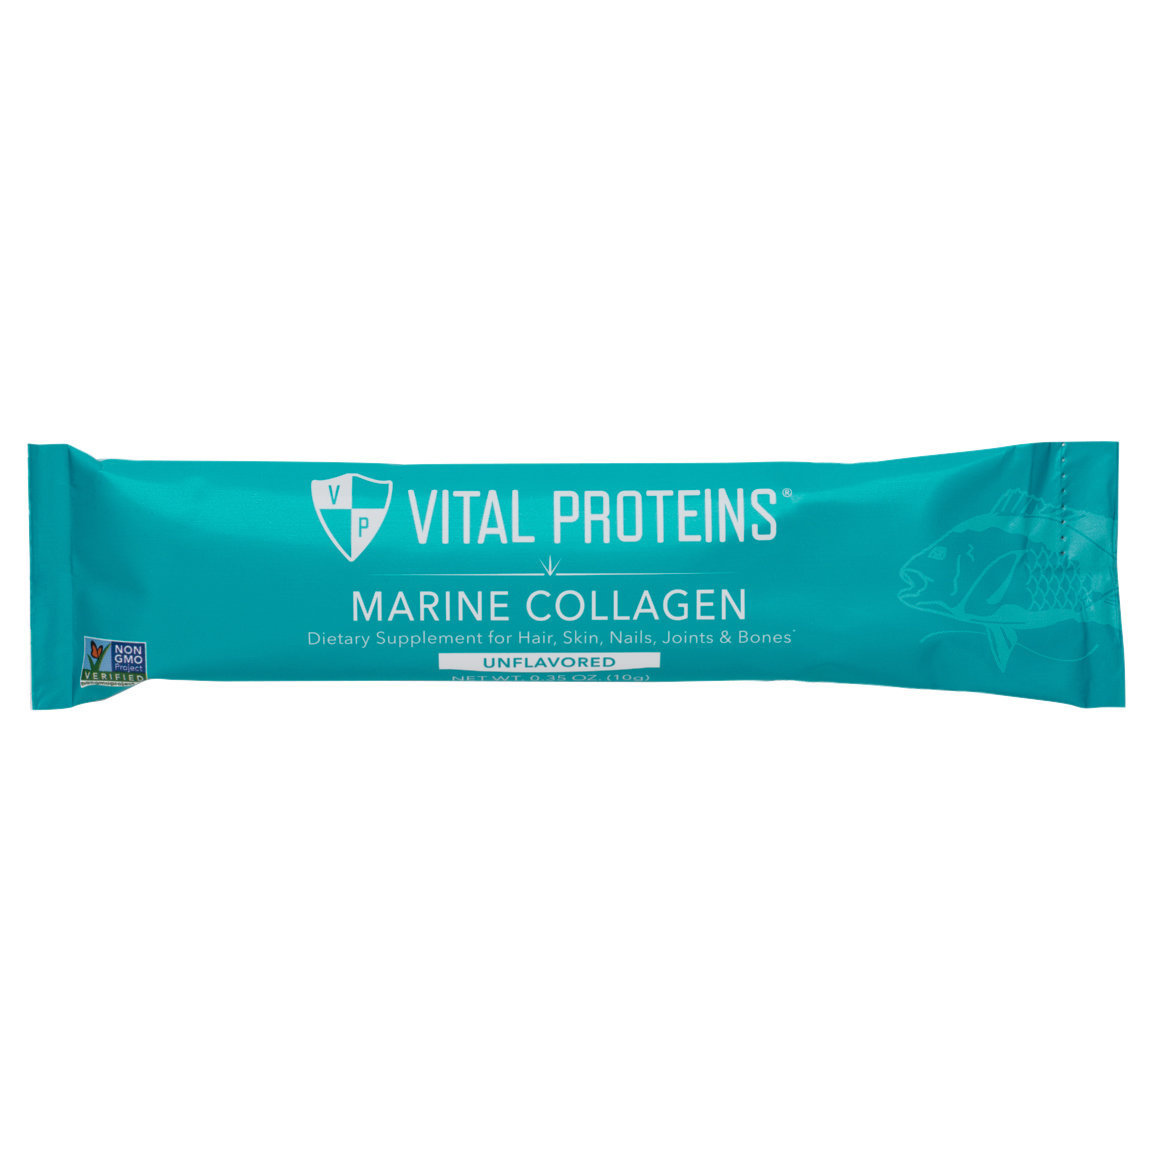 Vital Proteins Marine Collagen Stick Packs product swatch.